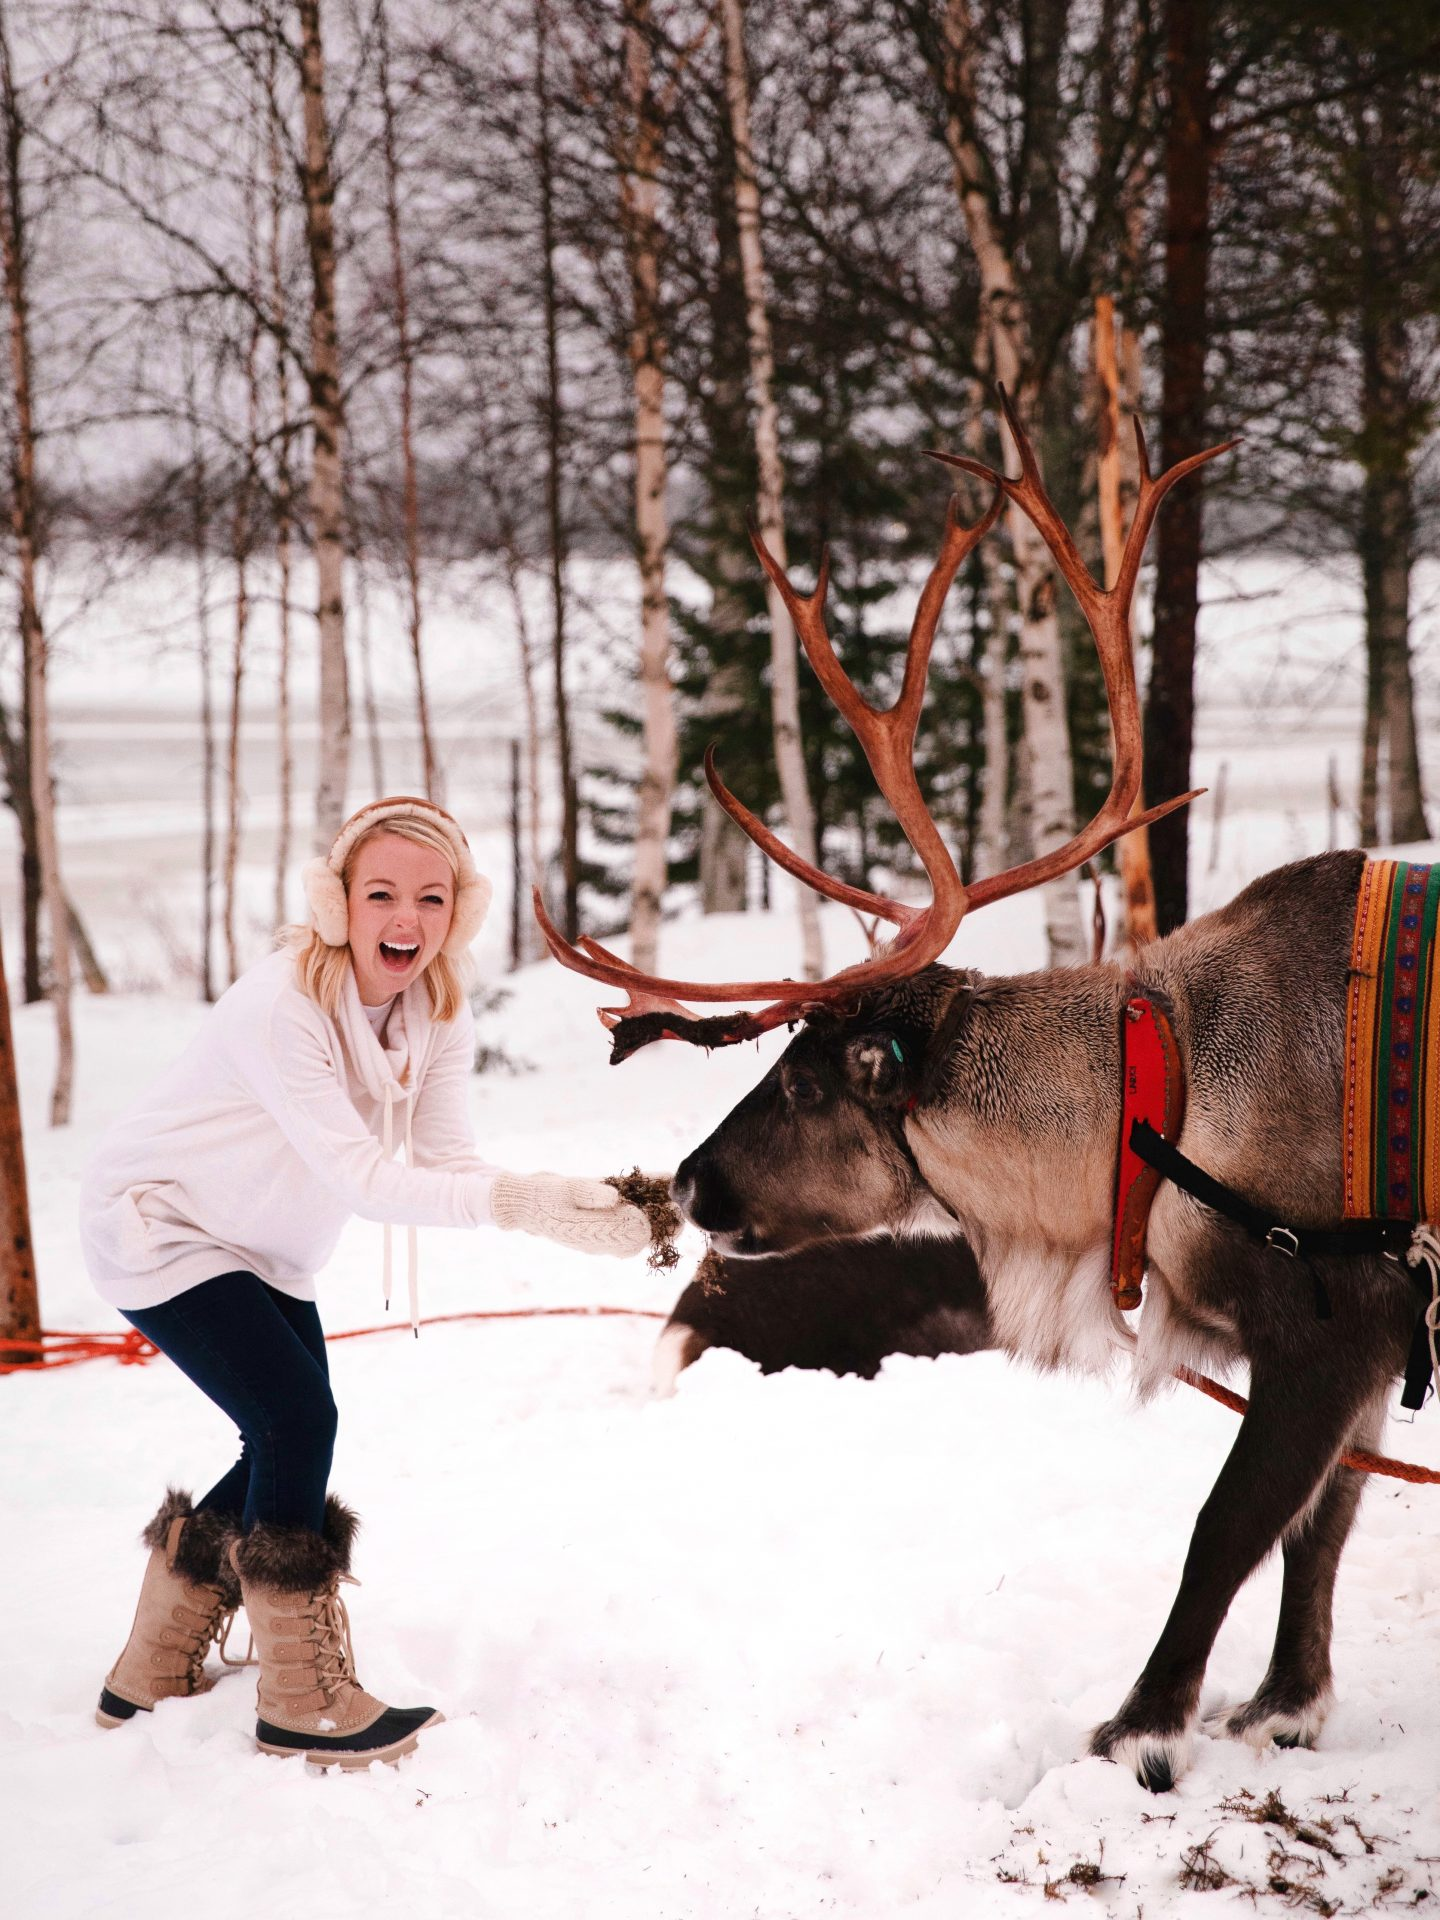 Travel guide and travel diary to Lapland, Finland and Rovaniemi, Finland with Sieriporo Reindeer Experience